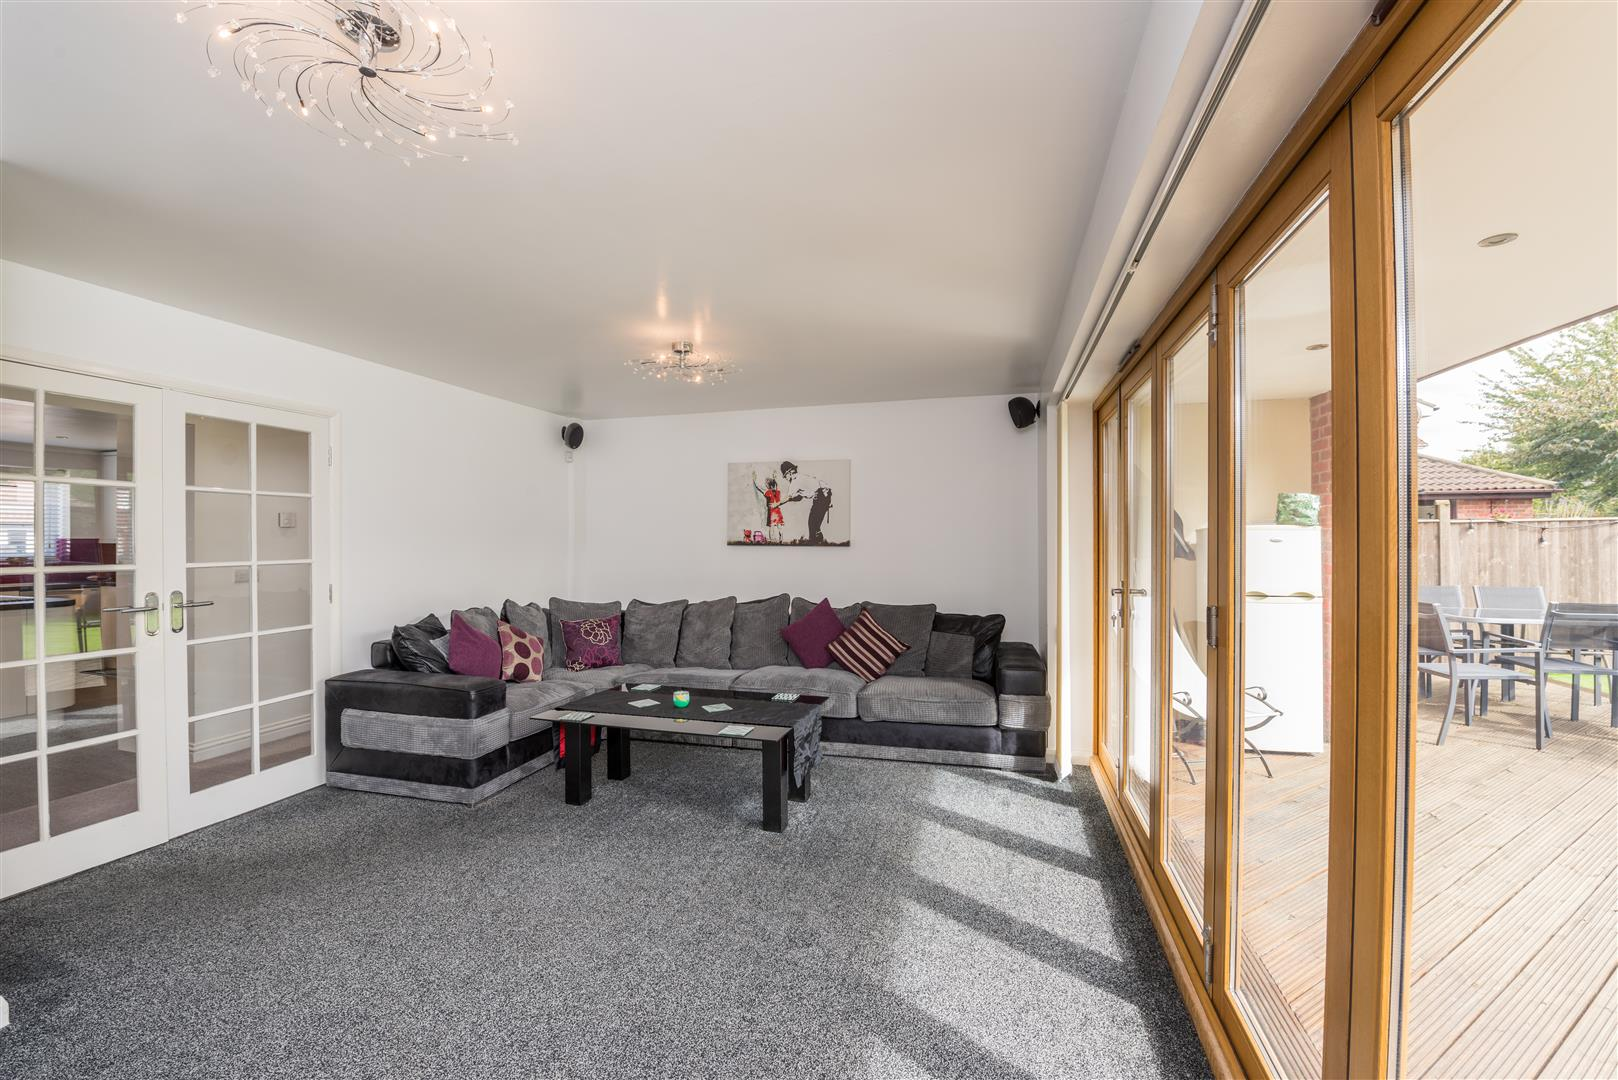 3 bed house for sale in Fallodon Way, Bristol  - Property Image 2